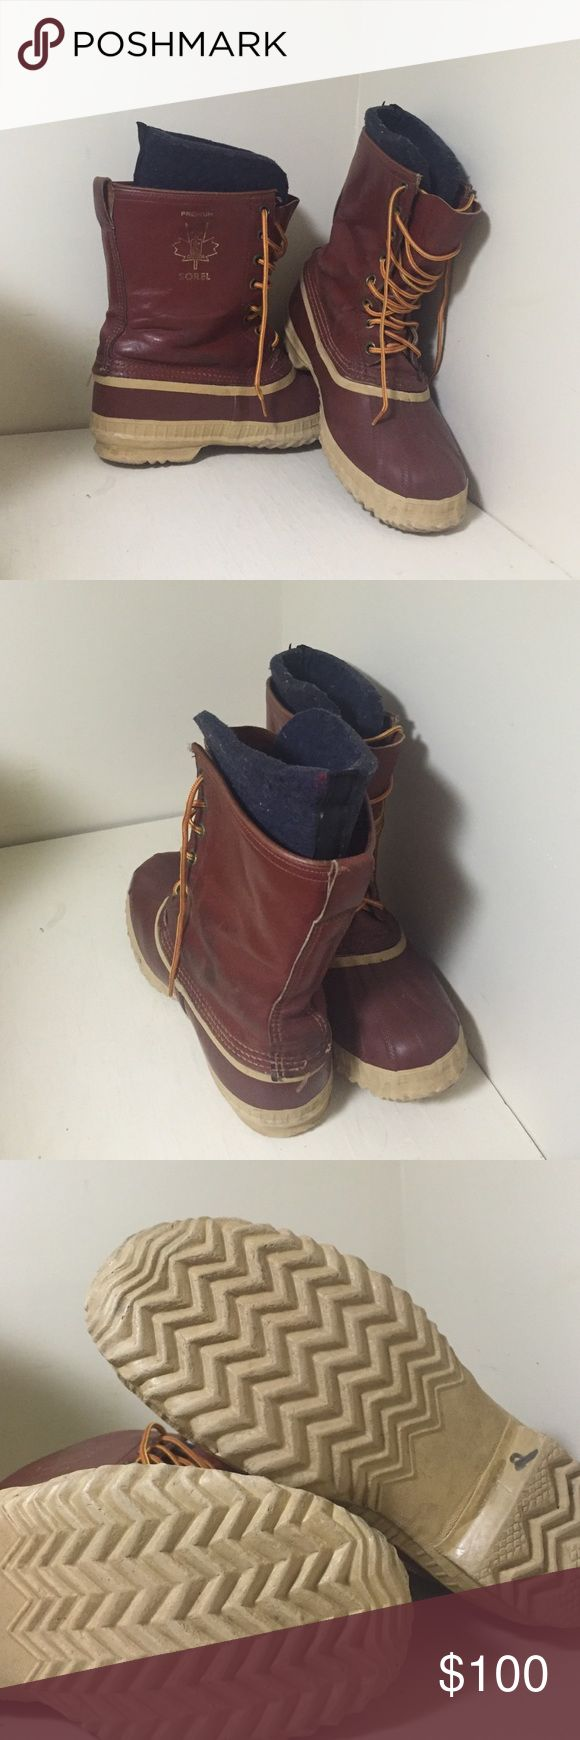 Vintage Sorel duck boots Vintage Sorel duck boots. Size 9 Sorel Shoes Lace Up Boots